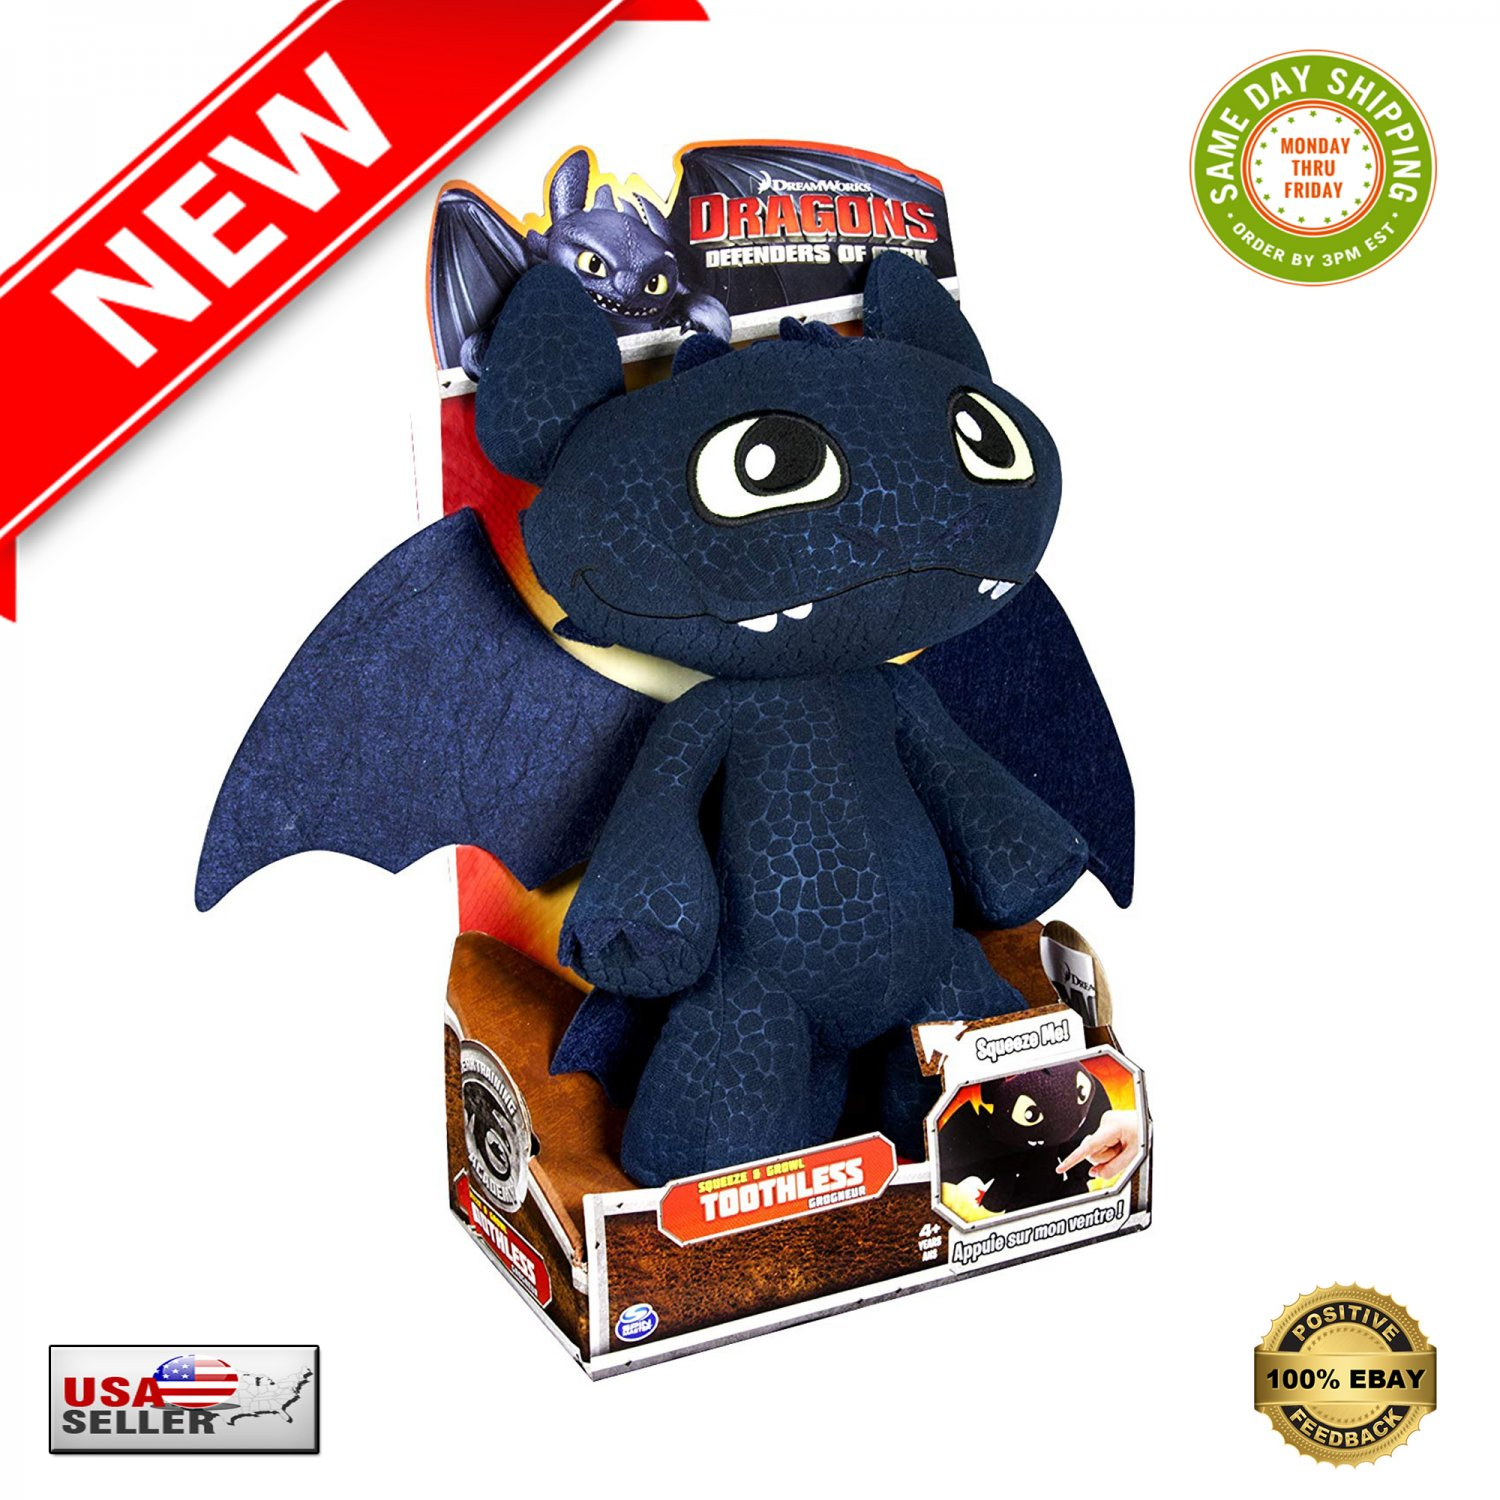 "� DreamWorks Dragons Defenders of Berk Squeeze & Growl Toothless 11"" Plush + Sound �"